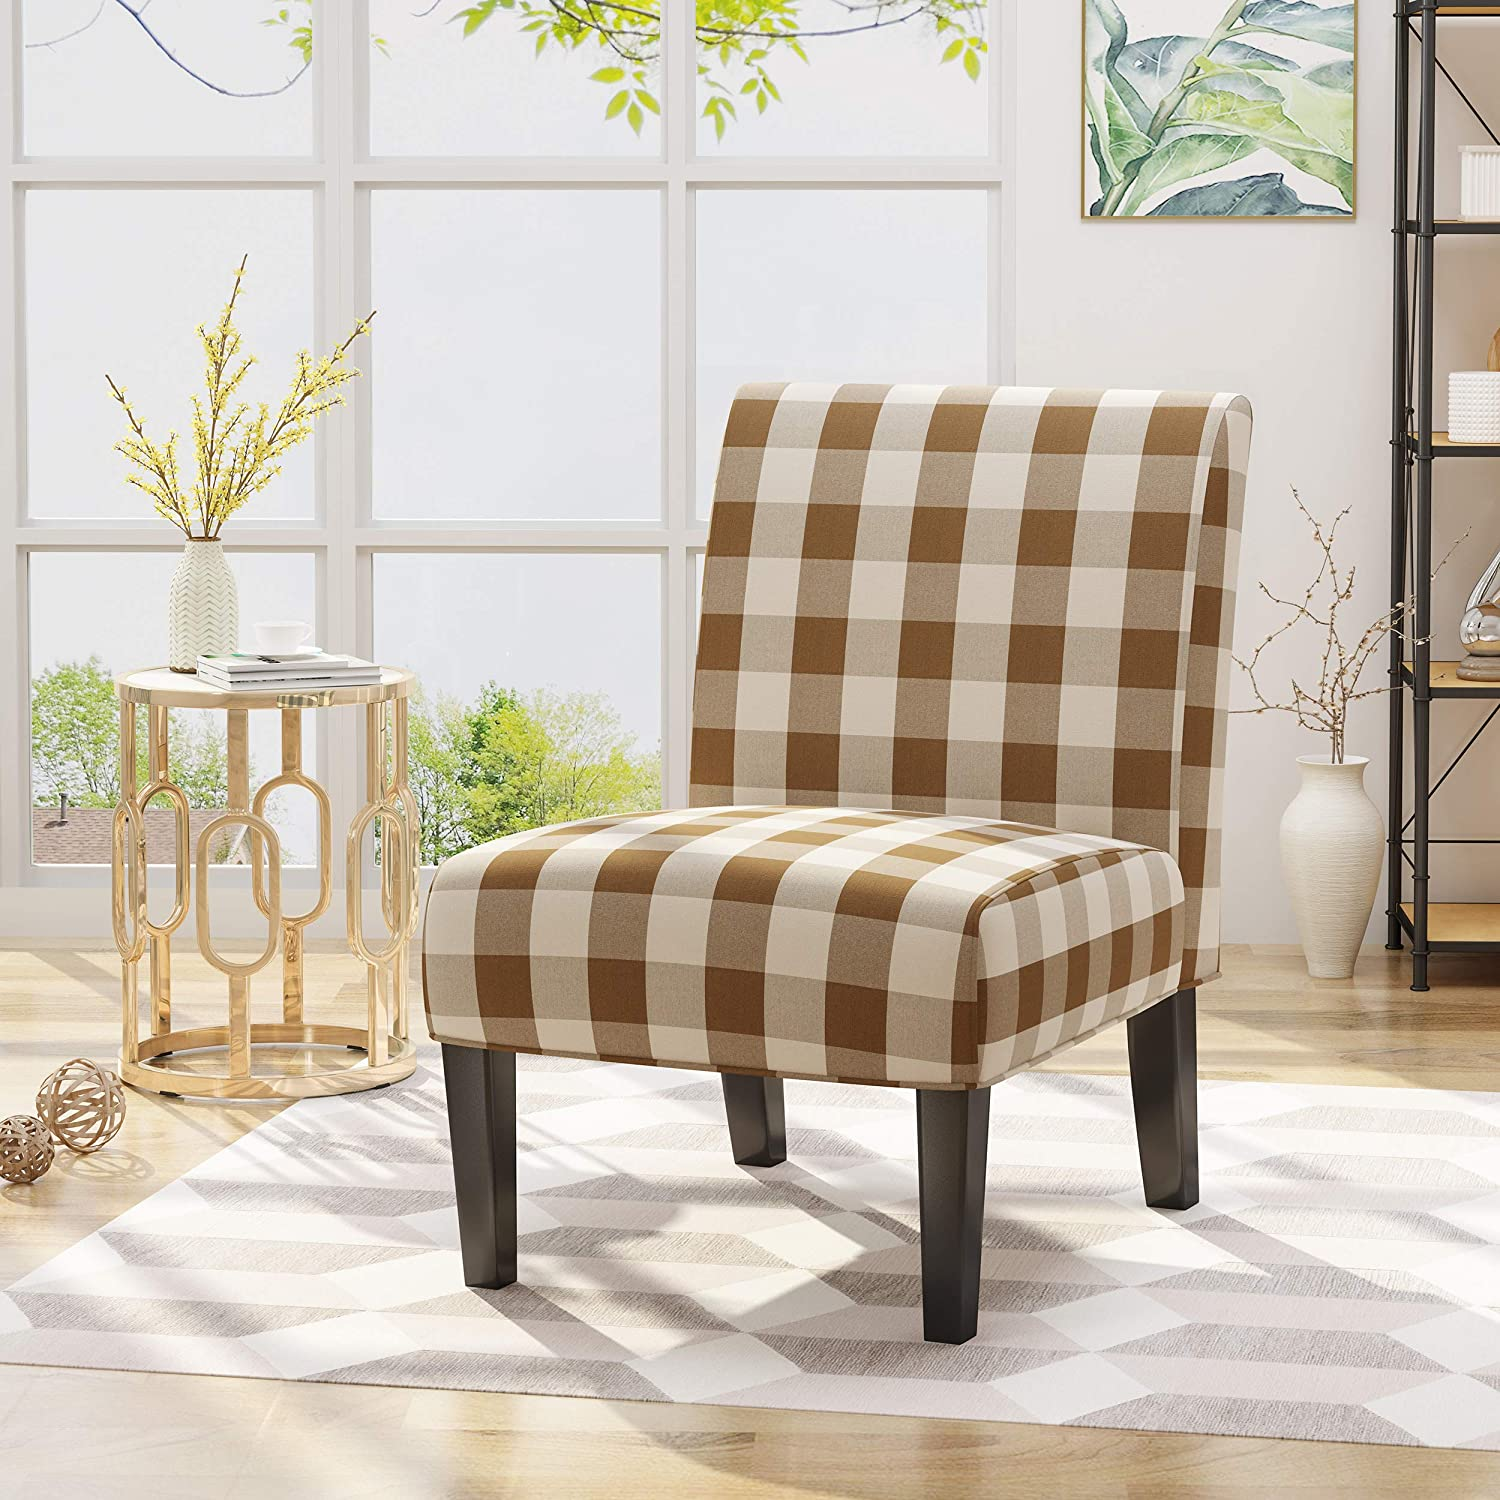 Christopher Knight Home Kendal Traditional Upholstered Farmhouse Accent Chair, Brown Checkerboard, Purple Tweed